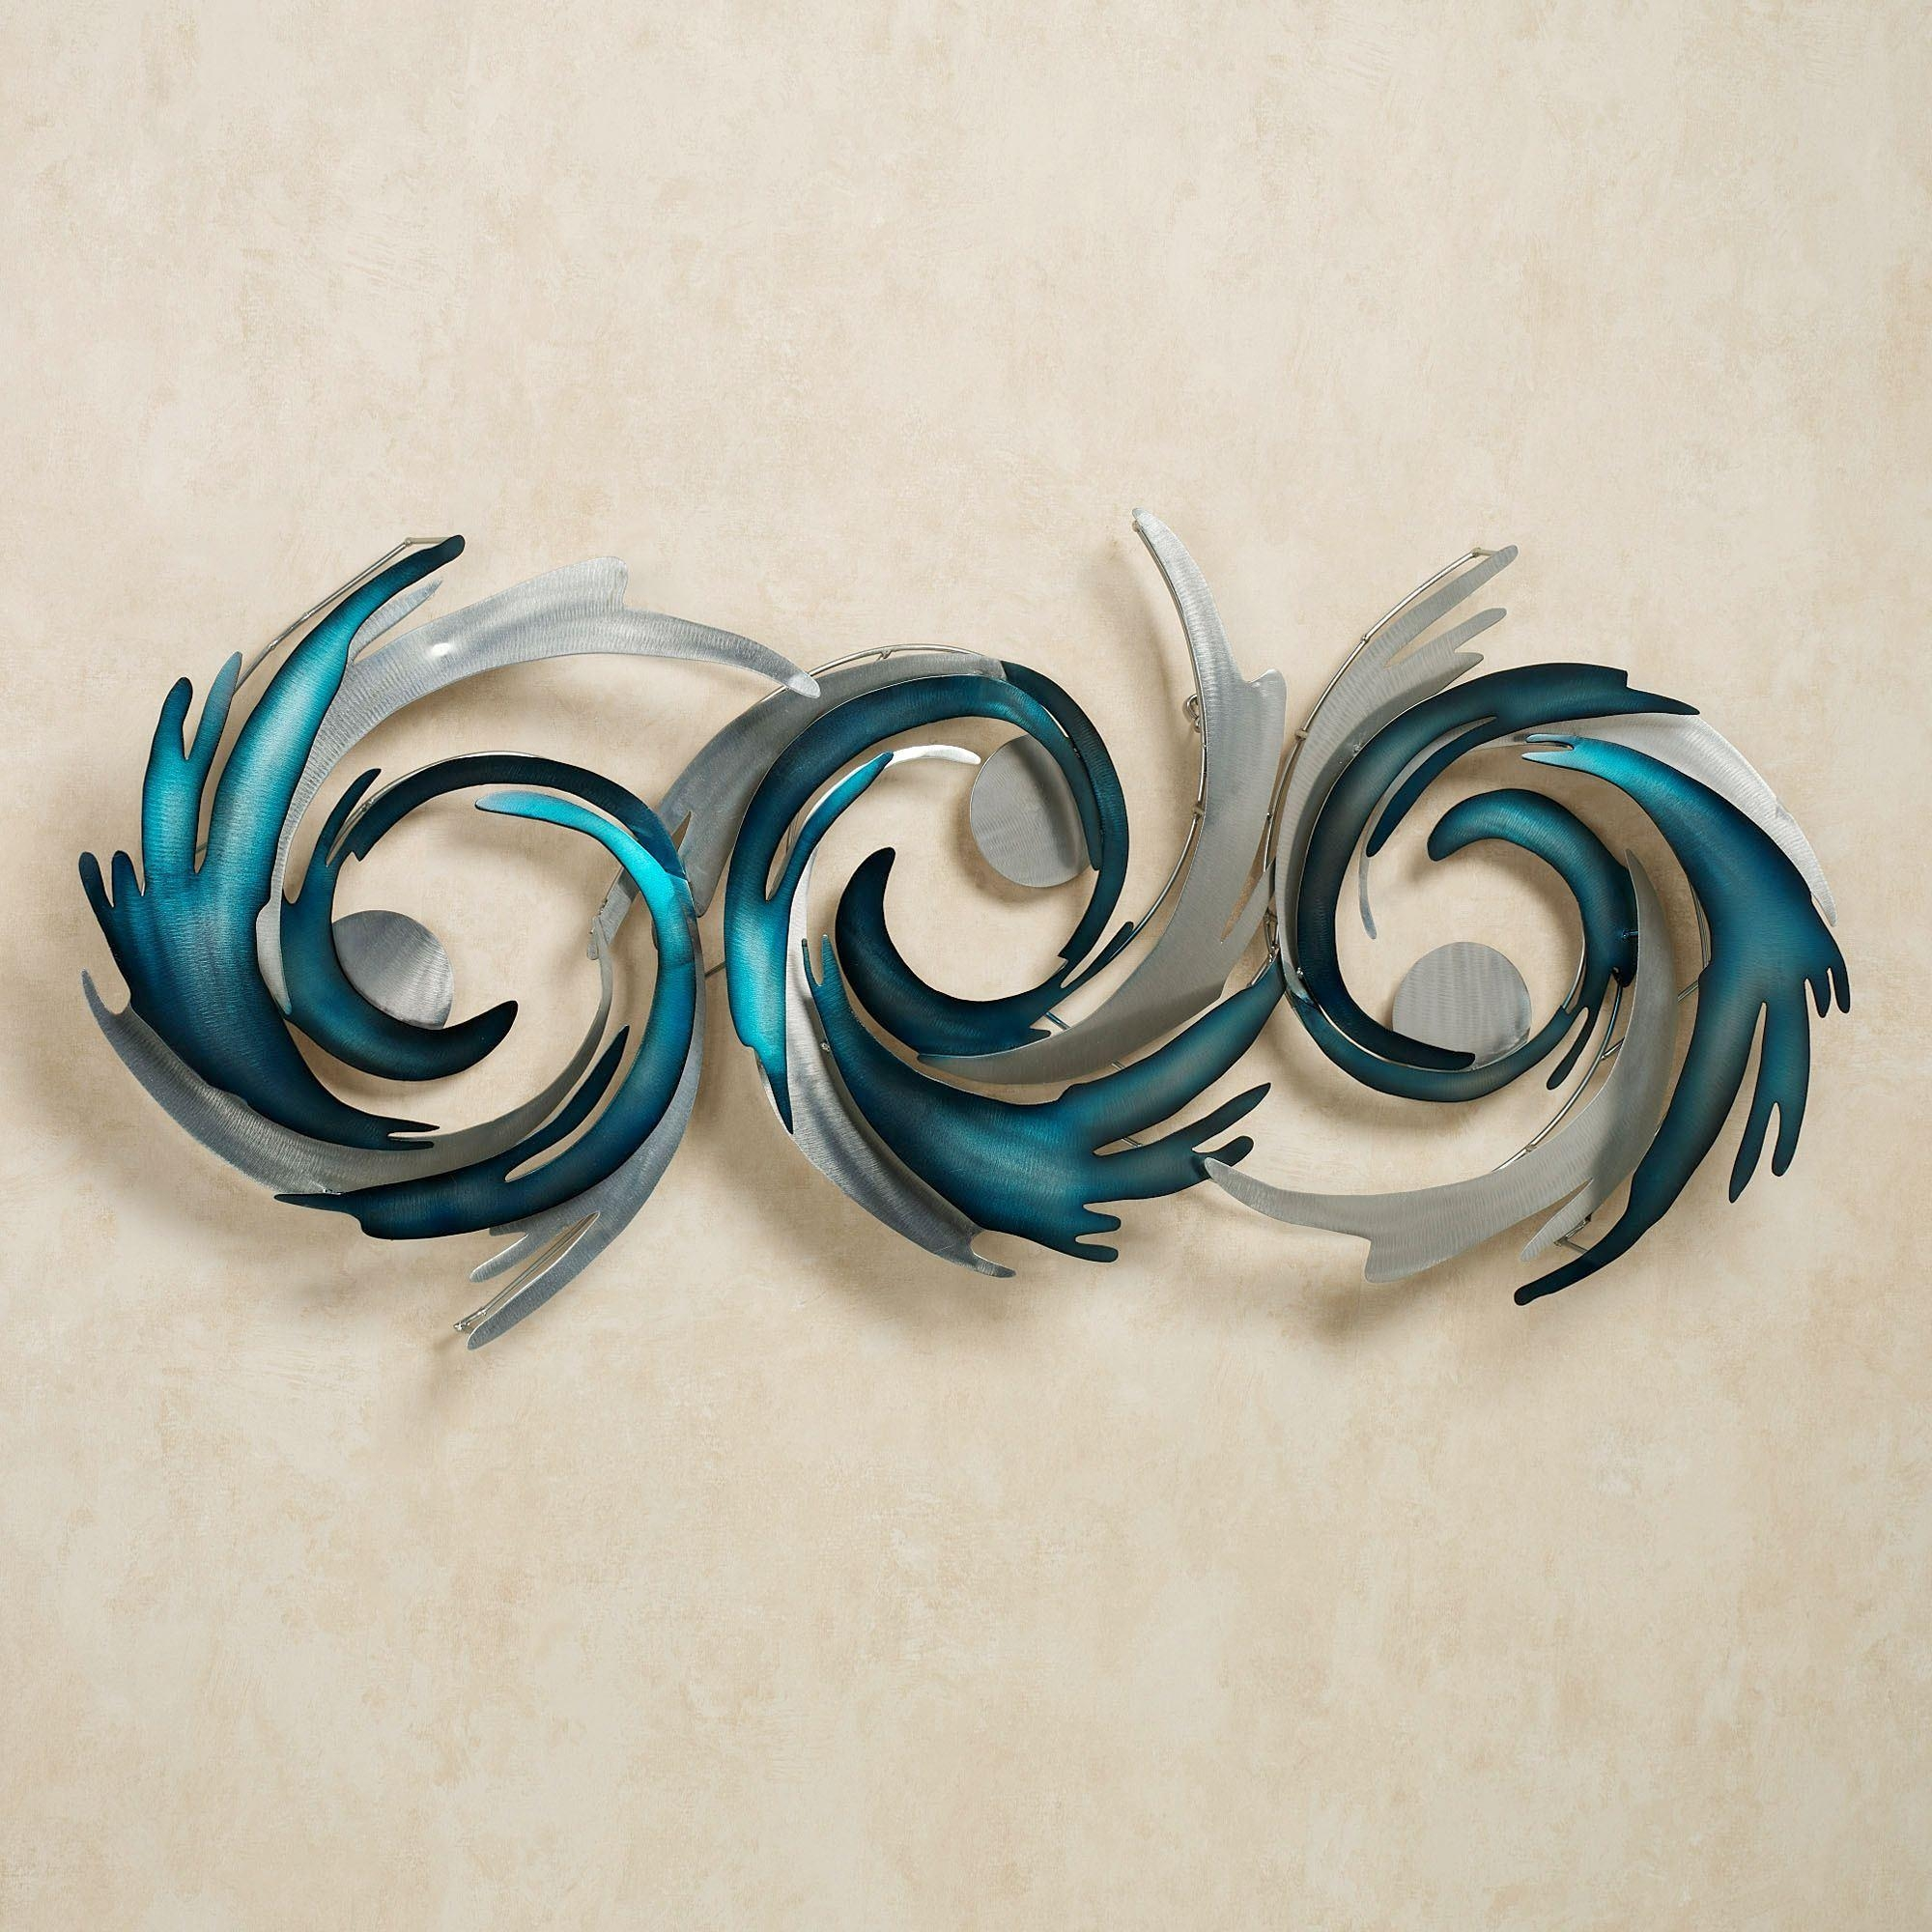 Contemporary Metal Wall Art Sculptures | Touch Of Class Intended For Touch Of Class Metal Wall Art (View 9 of 20)